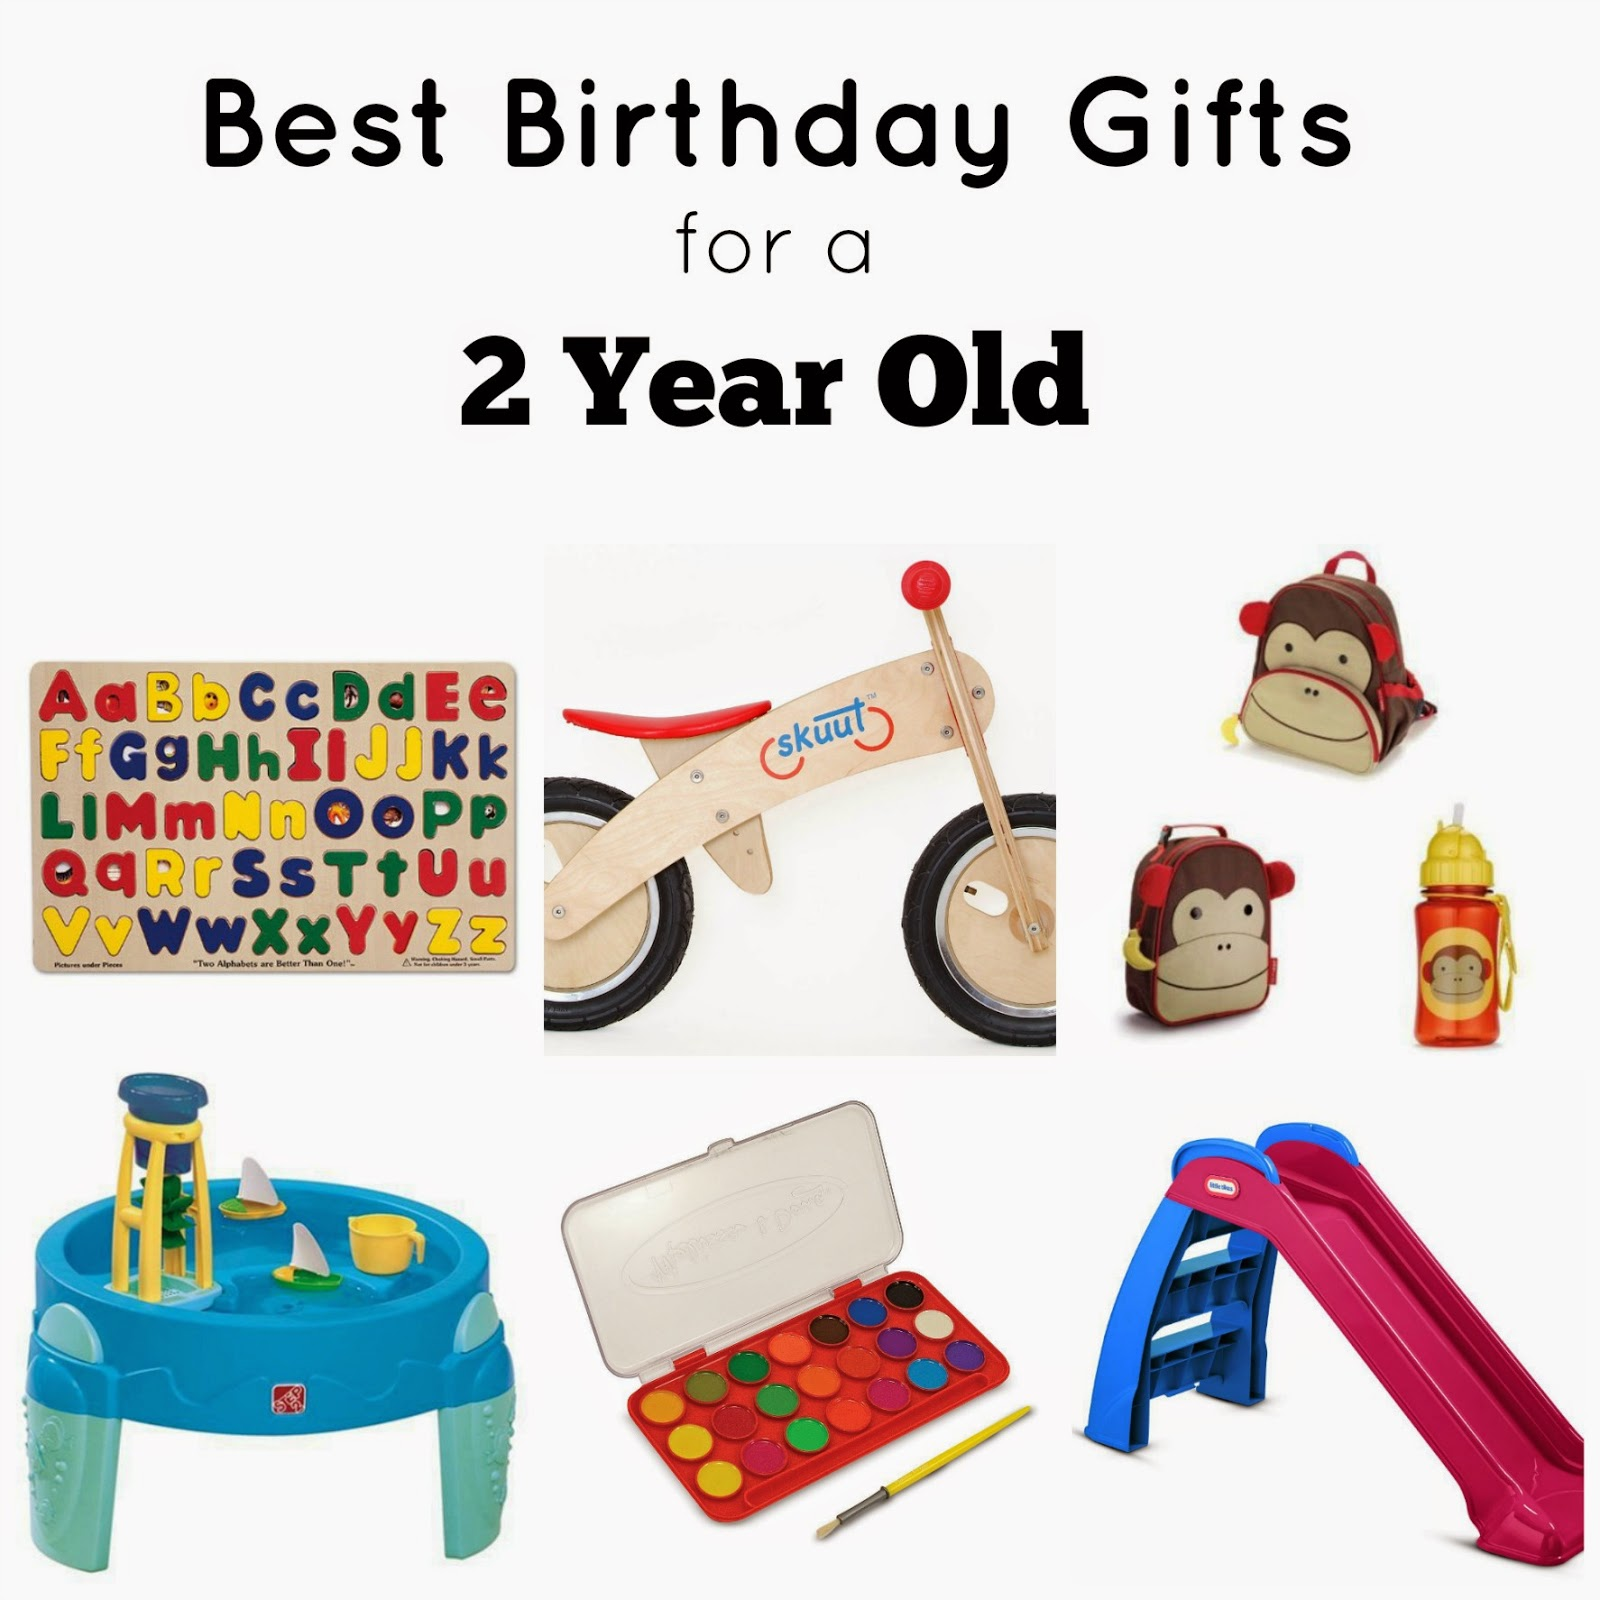 Our Life on a Bud Best Birthday Gifts for a 2 Year Old